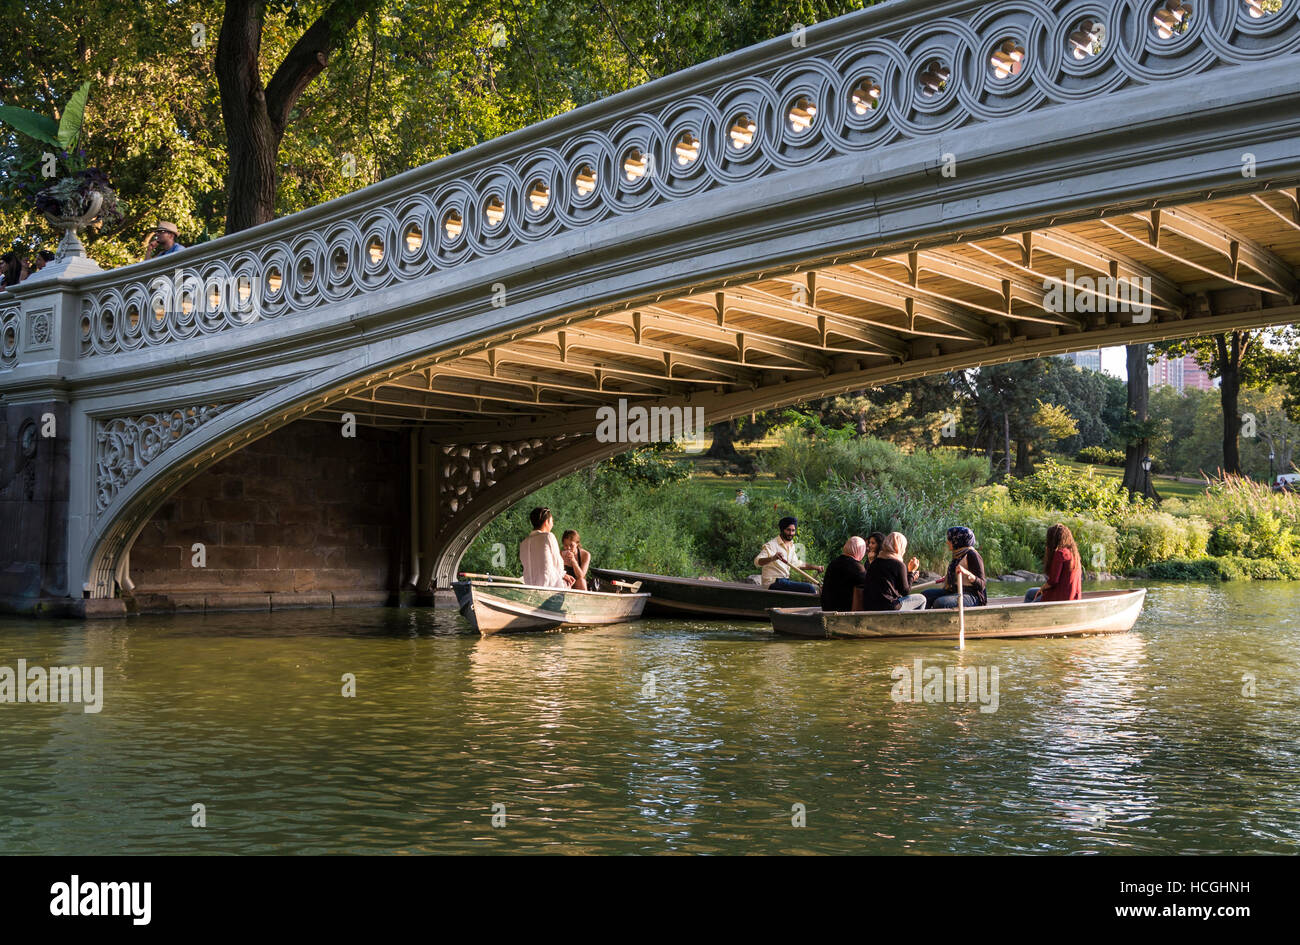 People boating in rowing boats in Summer on The Lake under Bow Bridge in Central Park, New York City. - Stock Image